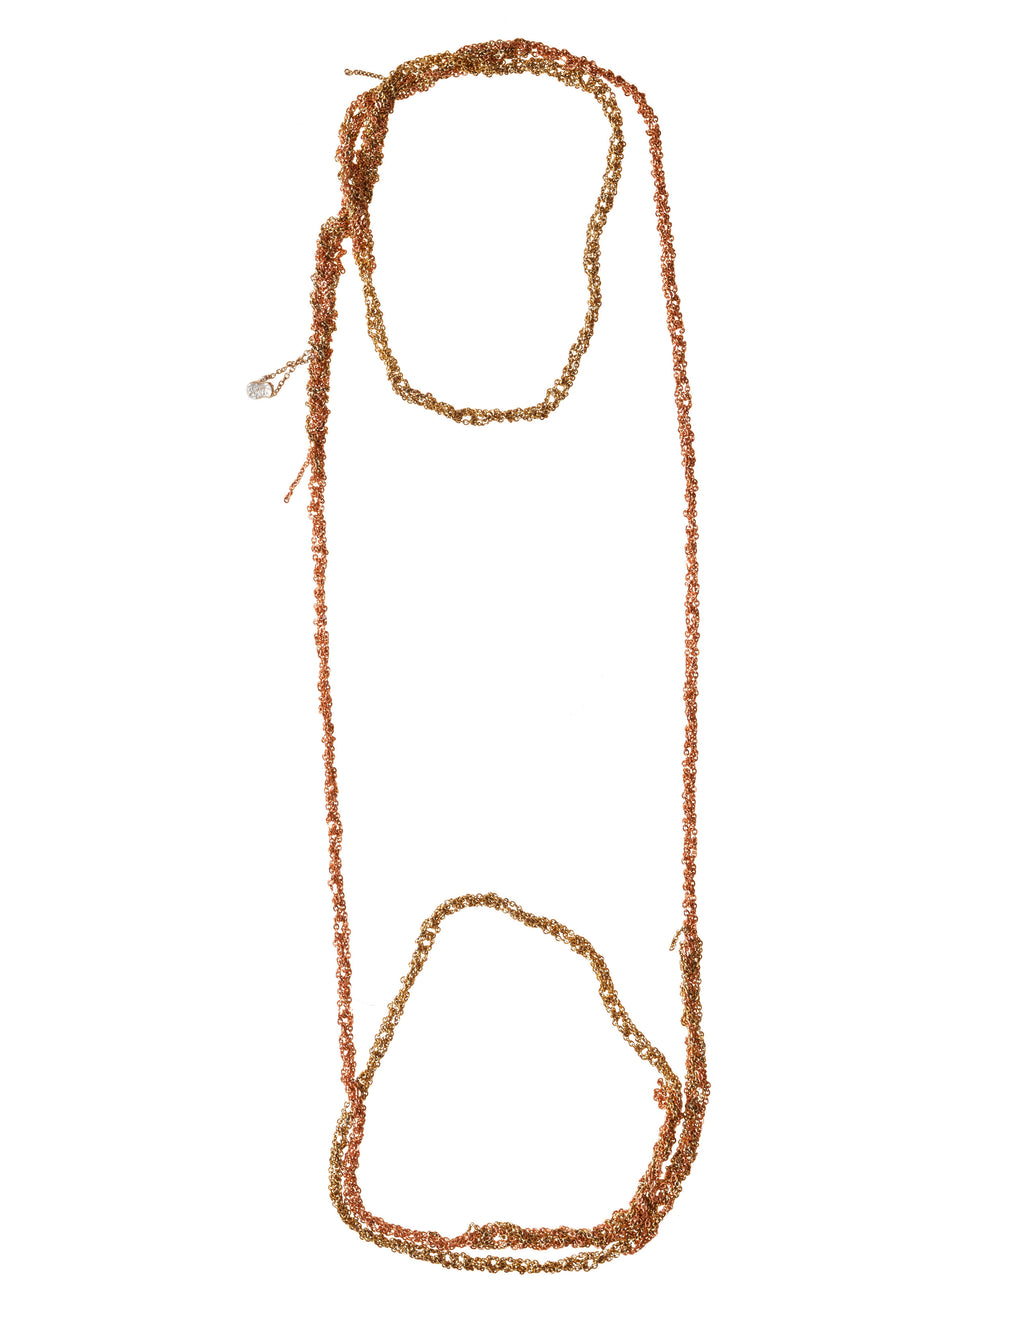 4-Tone Simple Necklace in Gold + Rose Gold